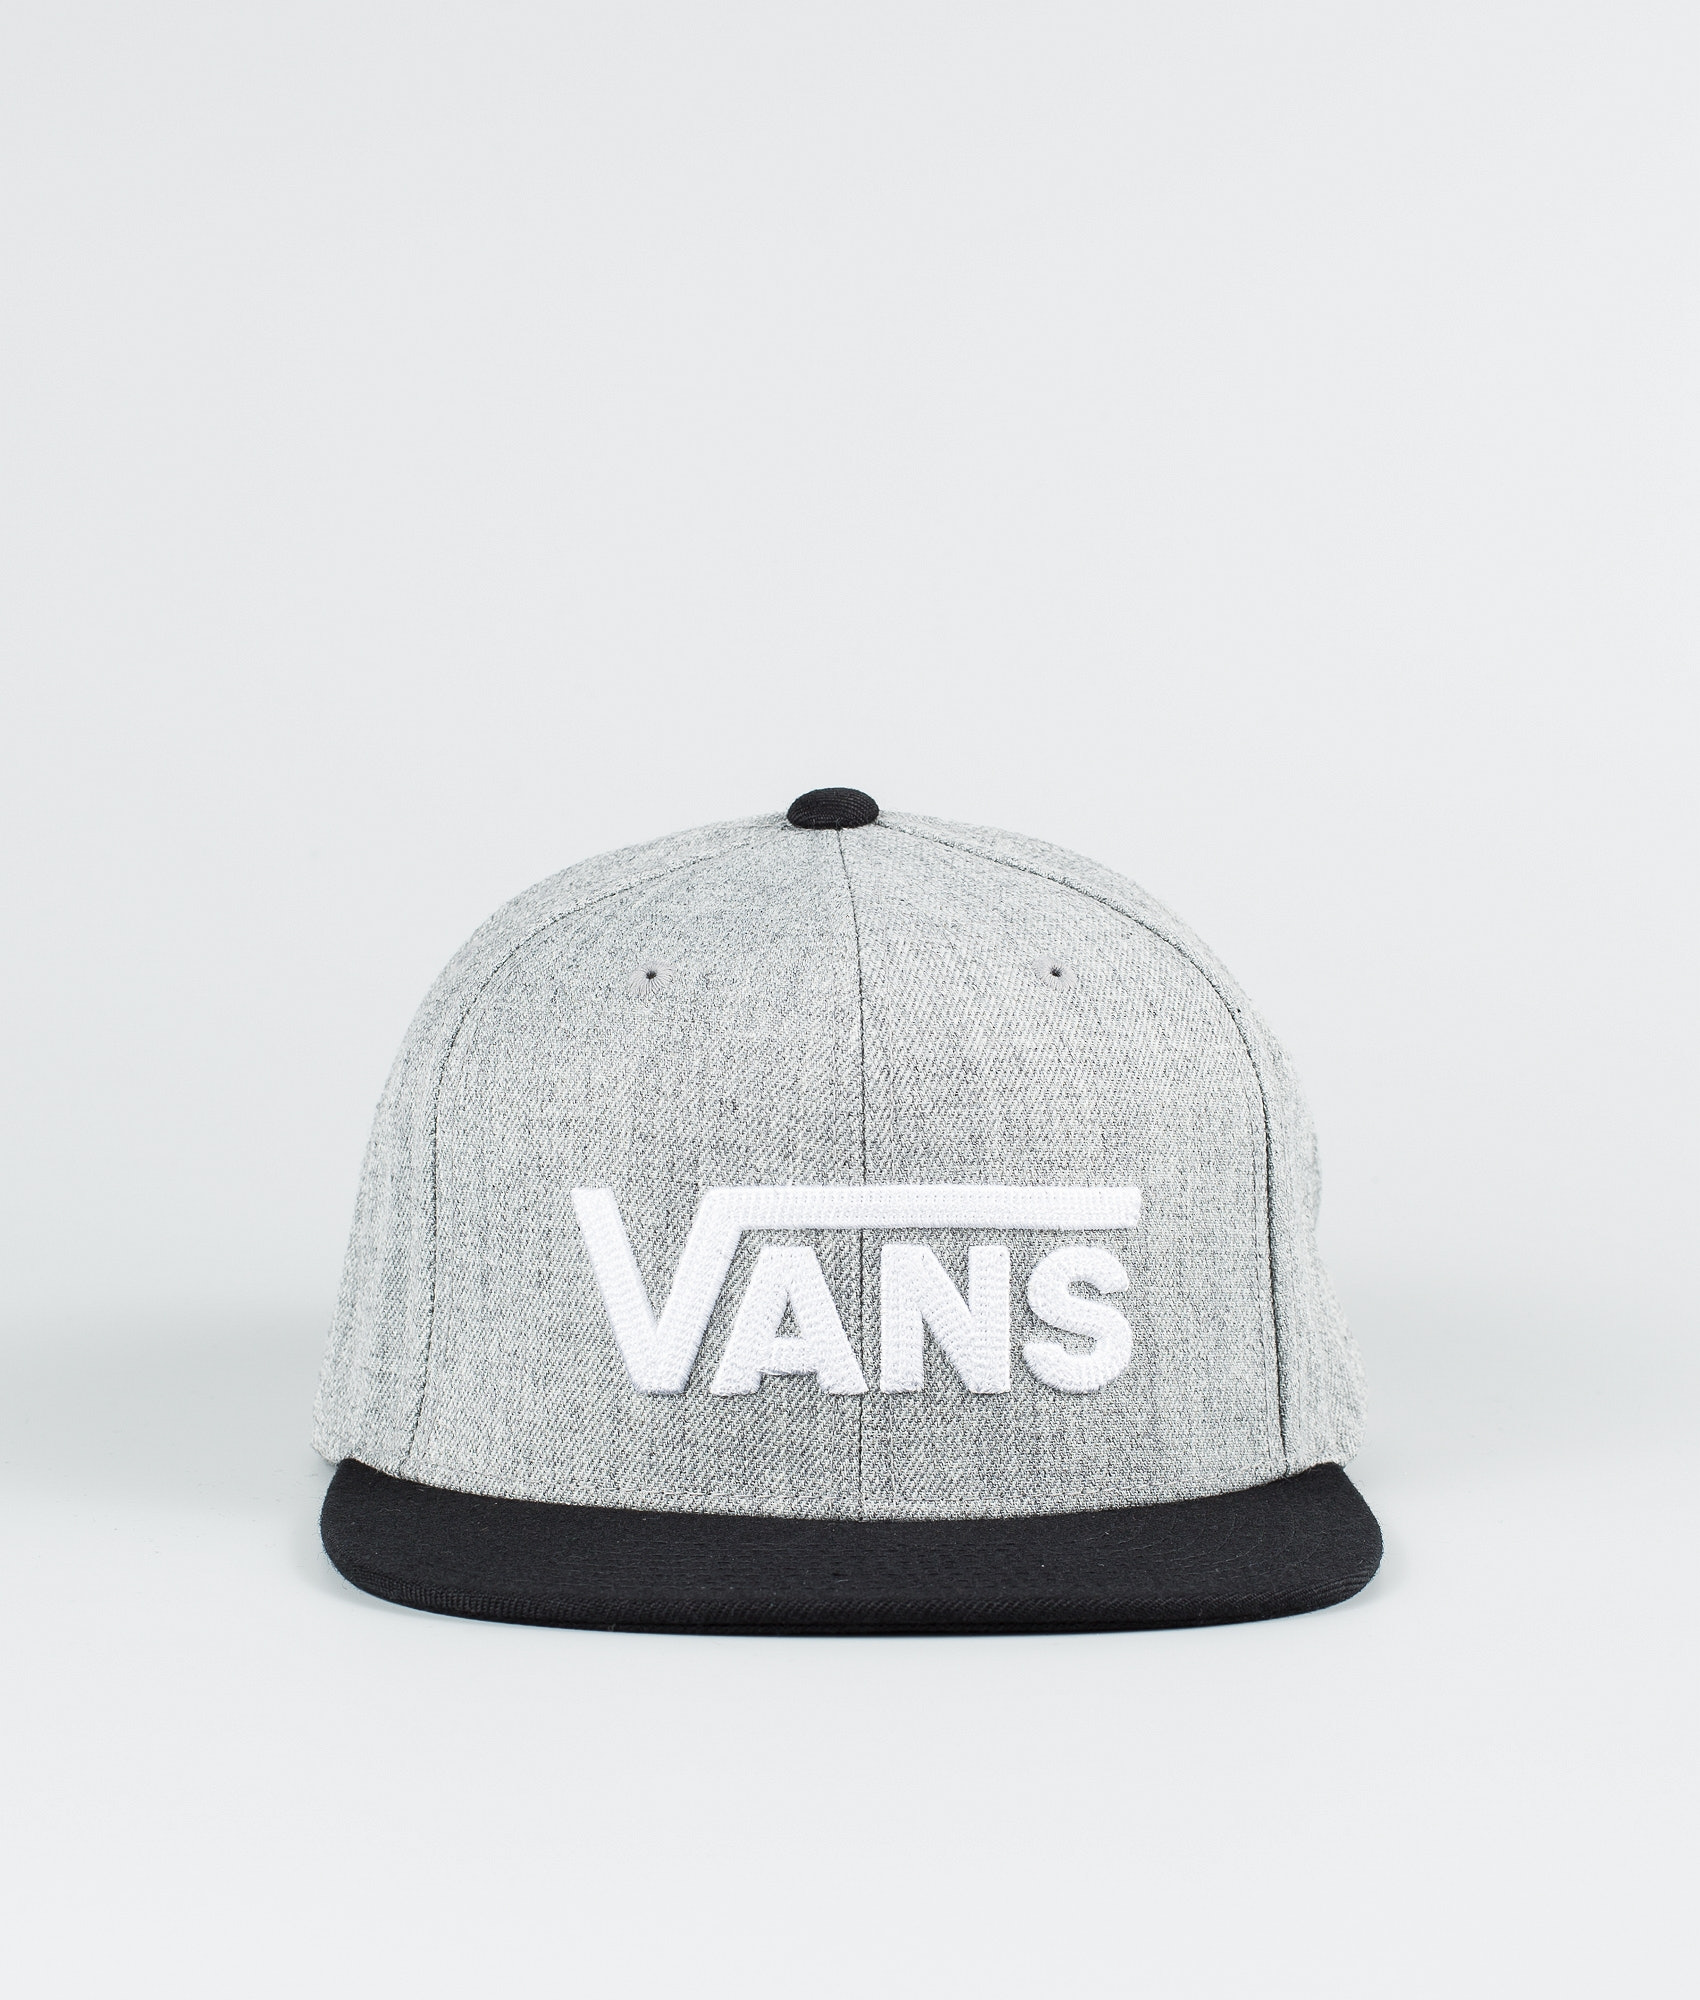 57f8cd1dcd0243 Vans Drop V II Snapback Cap Heather Grey Black - Ridestore.com